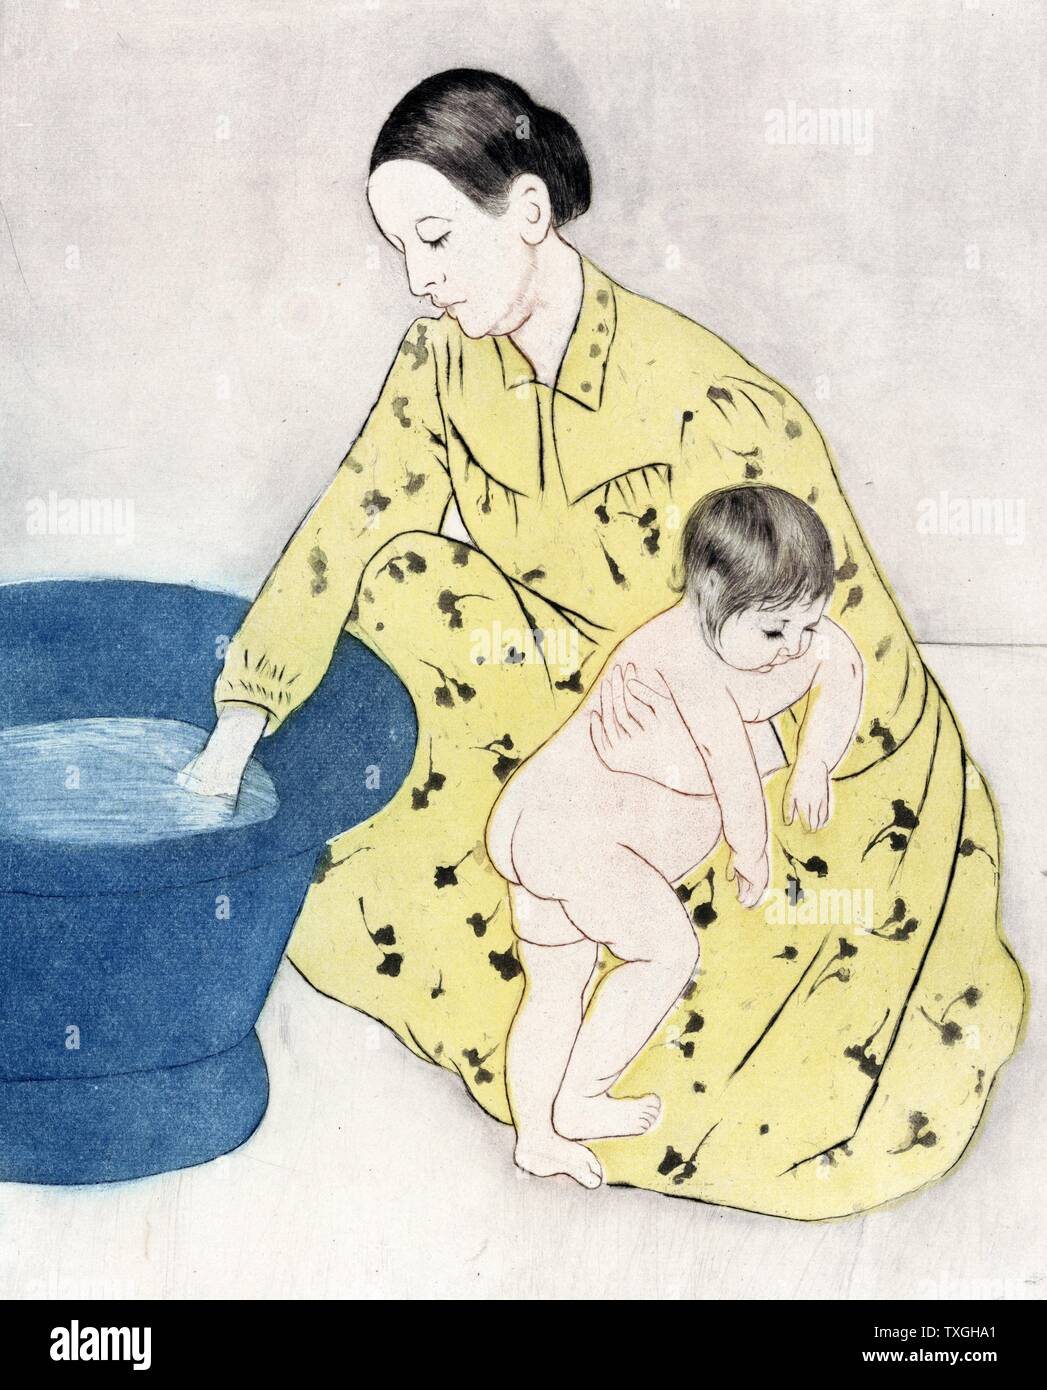 The bath, 1891 by Mary Cassatt 1844-1926, American artist. colour dry point, soft ground etching, and aquatint showing a woman holding a child while checking the temperature of water in a small bathing tub. Stock Photo